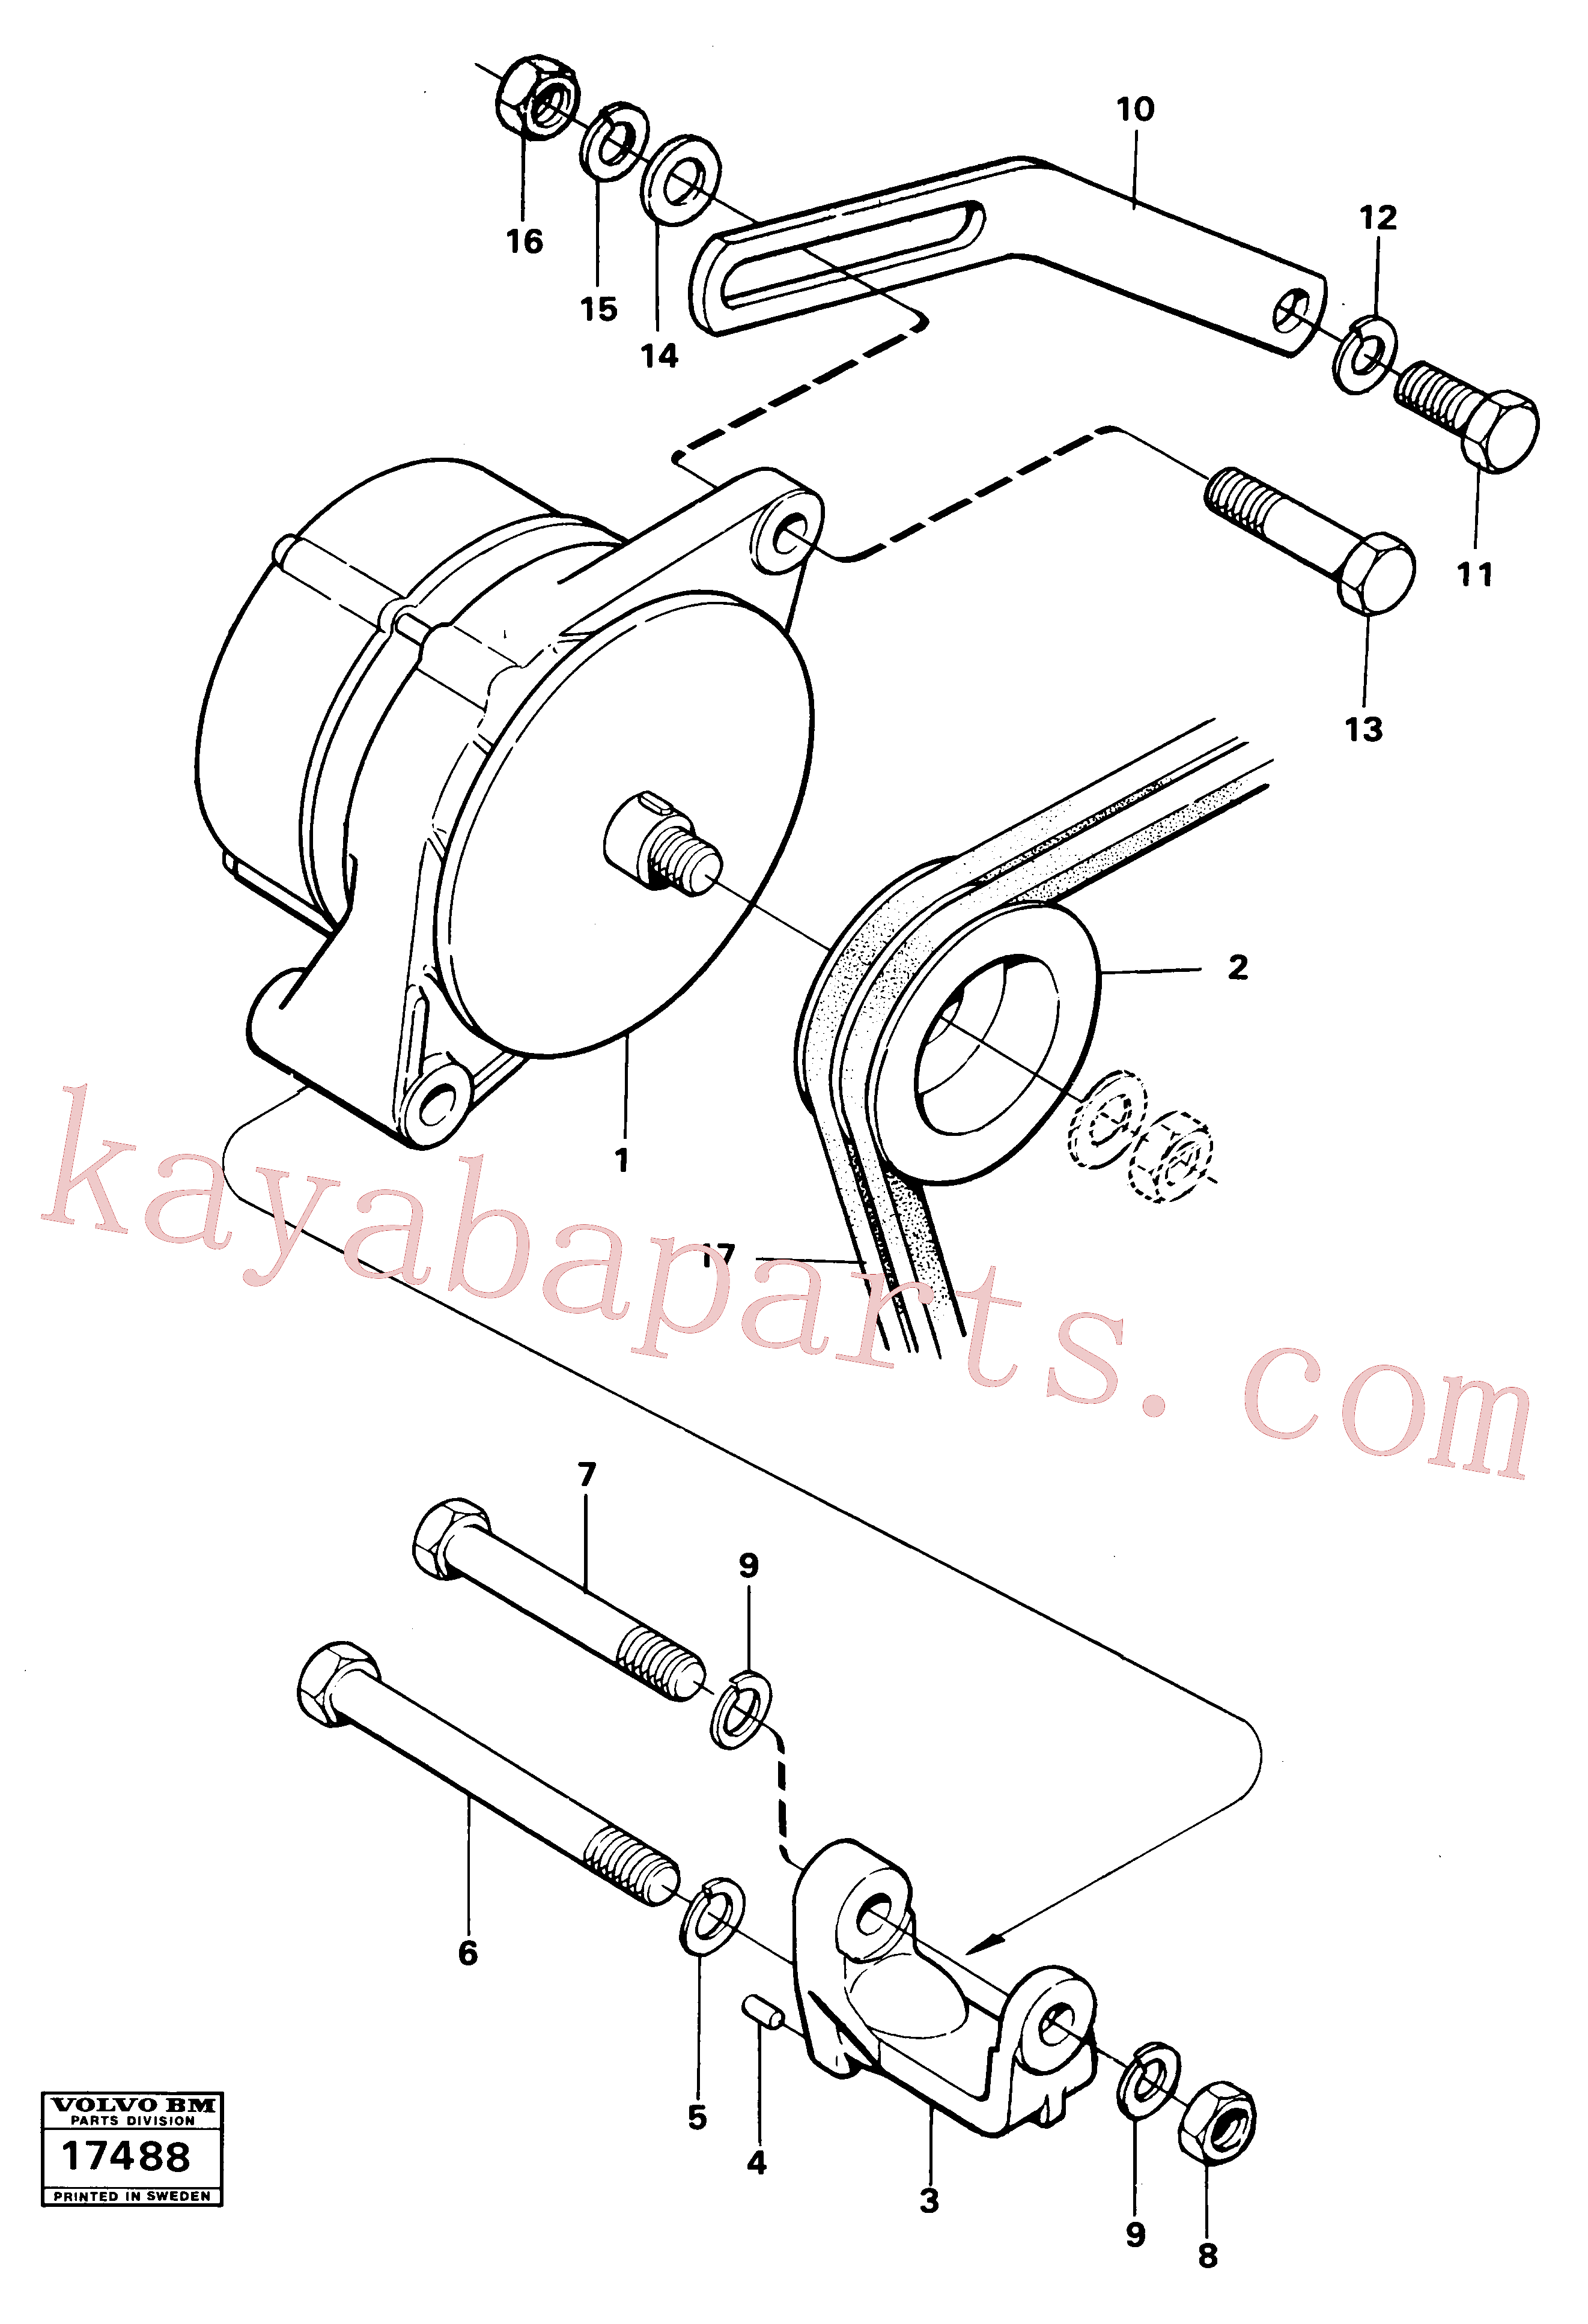 VOE941909 for Volvo Alternator with assembling details(17488 assembly)